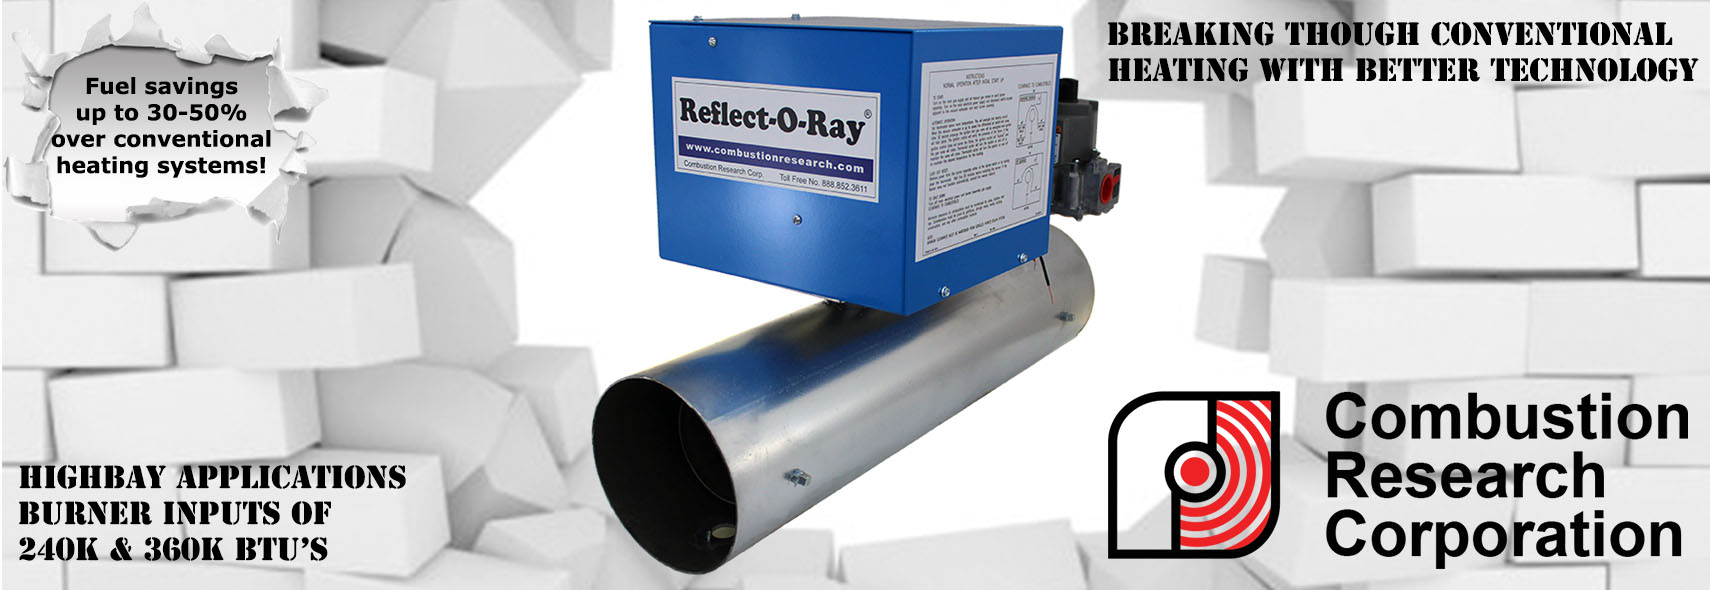 High Bay Radiant Infrared Gas Fired Heaters